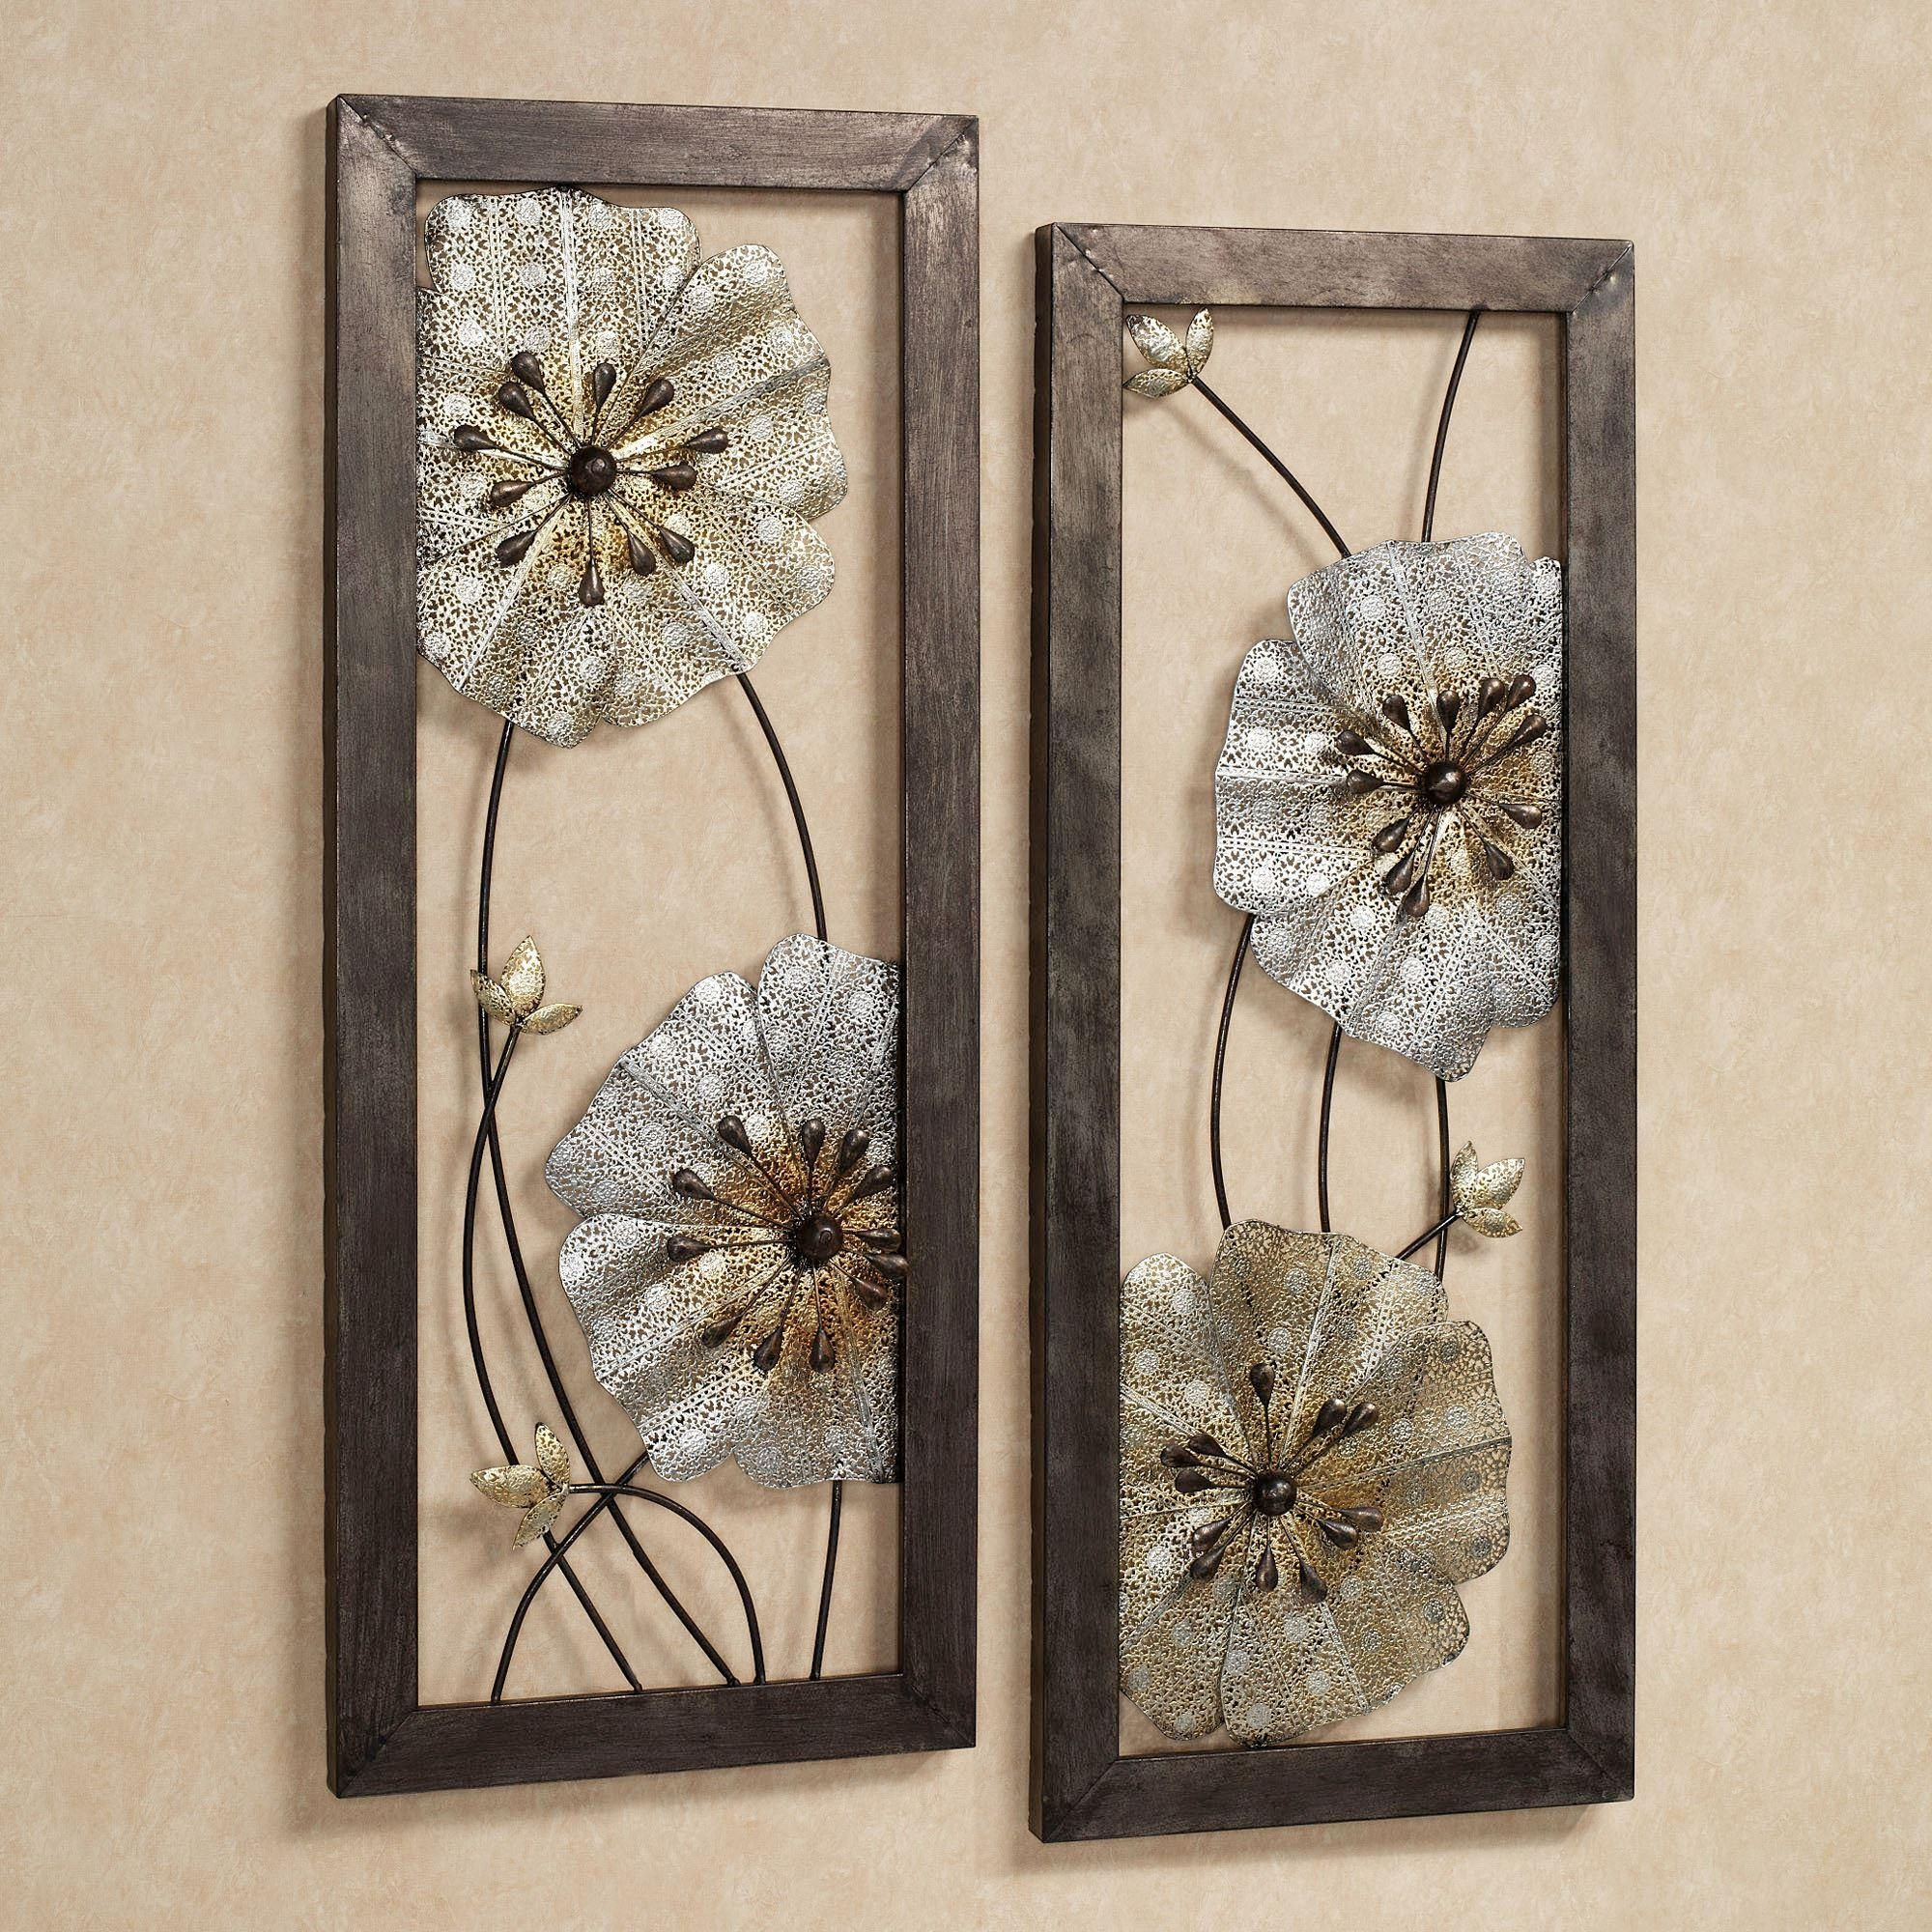 Natural Elements Wall Art | Touch Of Class Throughout Iron Art For Walls (View 5 of 20)